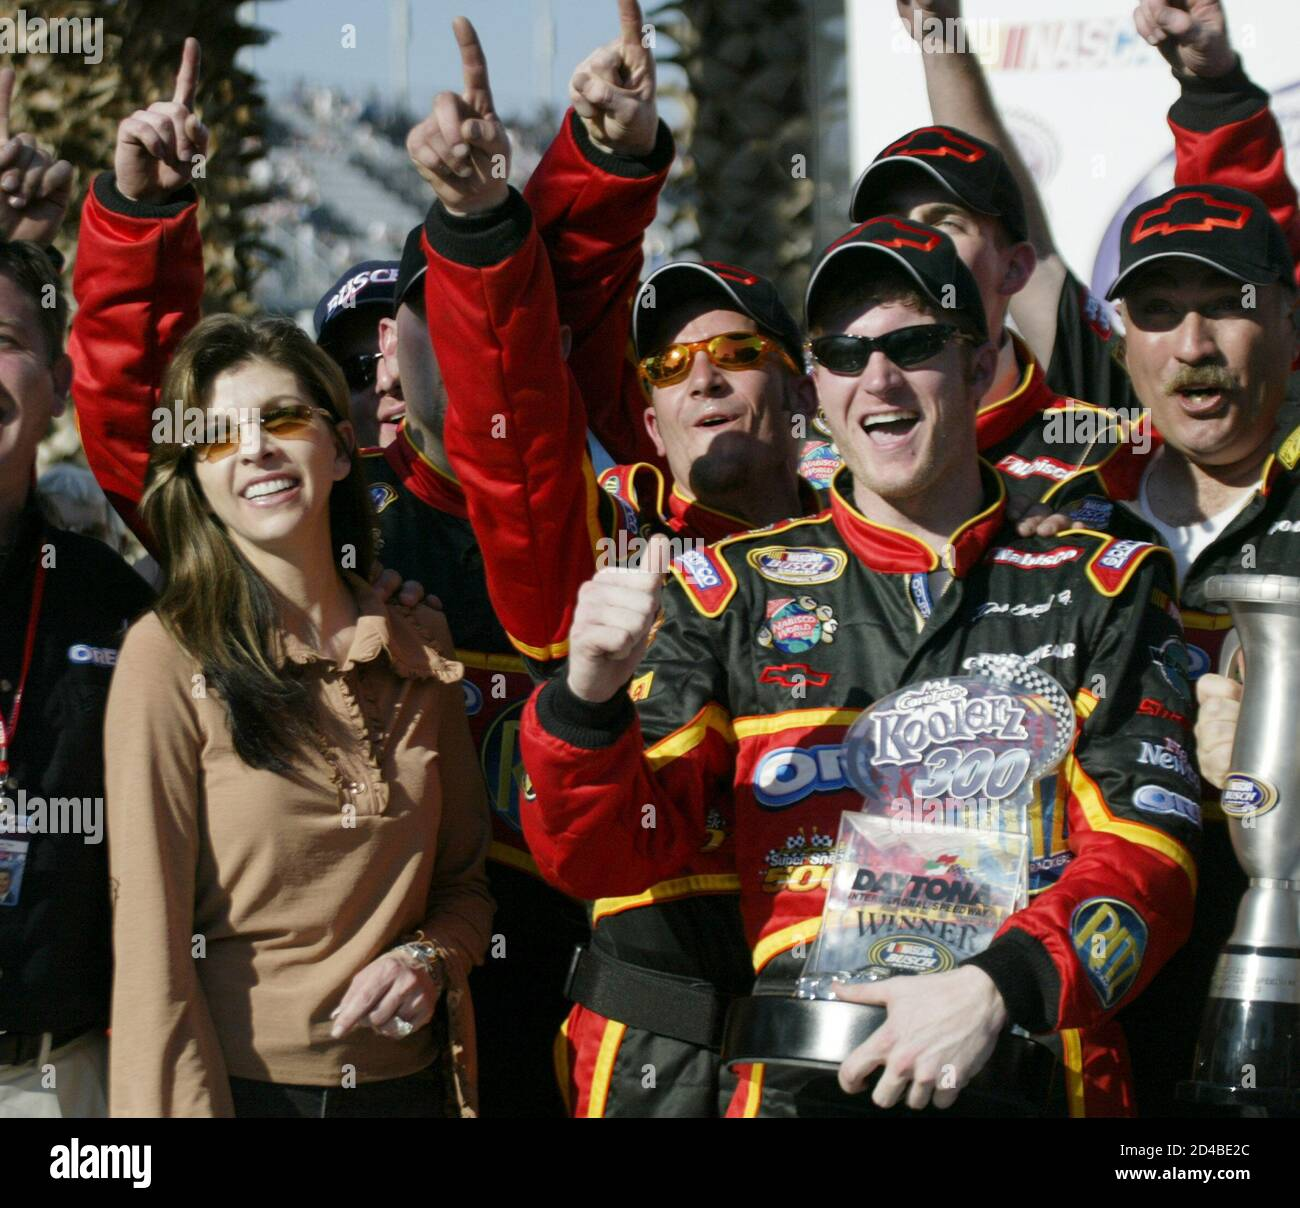 Teresa Earnhardt High Resolution Stock Photography And Images Alamy Kerry earnhardt and wife rene use their name on homes they helped design and promote with schumacher homes. https www alamy com dale earnhardt jr celebrates in victory lane with his stepmother and car owner teresa earnhardt after he won the koolerz 300 nascar busch series race at the daytona international speedway in daytona beach florida february 15 2003 the race was part of speedweeks events leading up to running of the 45th daytona 500 on february 16 reutersmarc serota jls image381339236 html